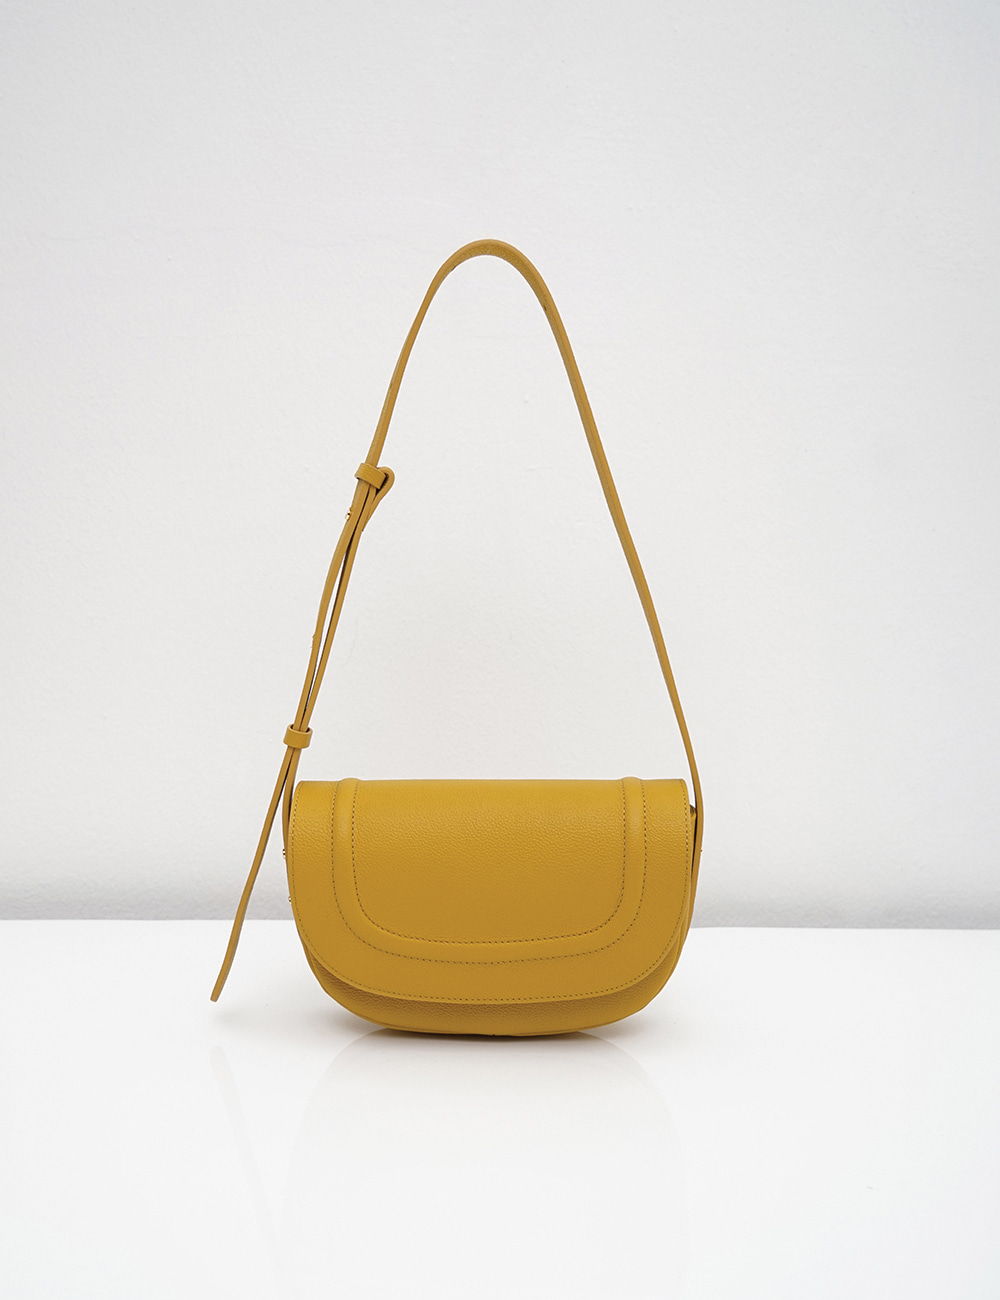 [New Arrivals] Loni small embo / yellow